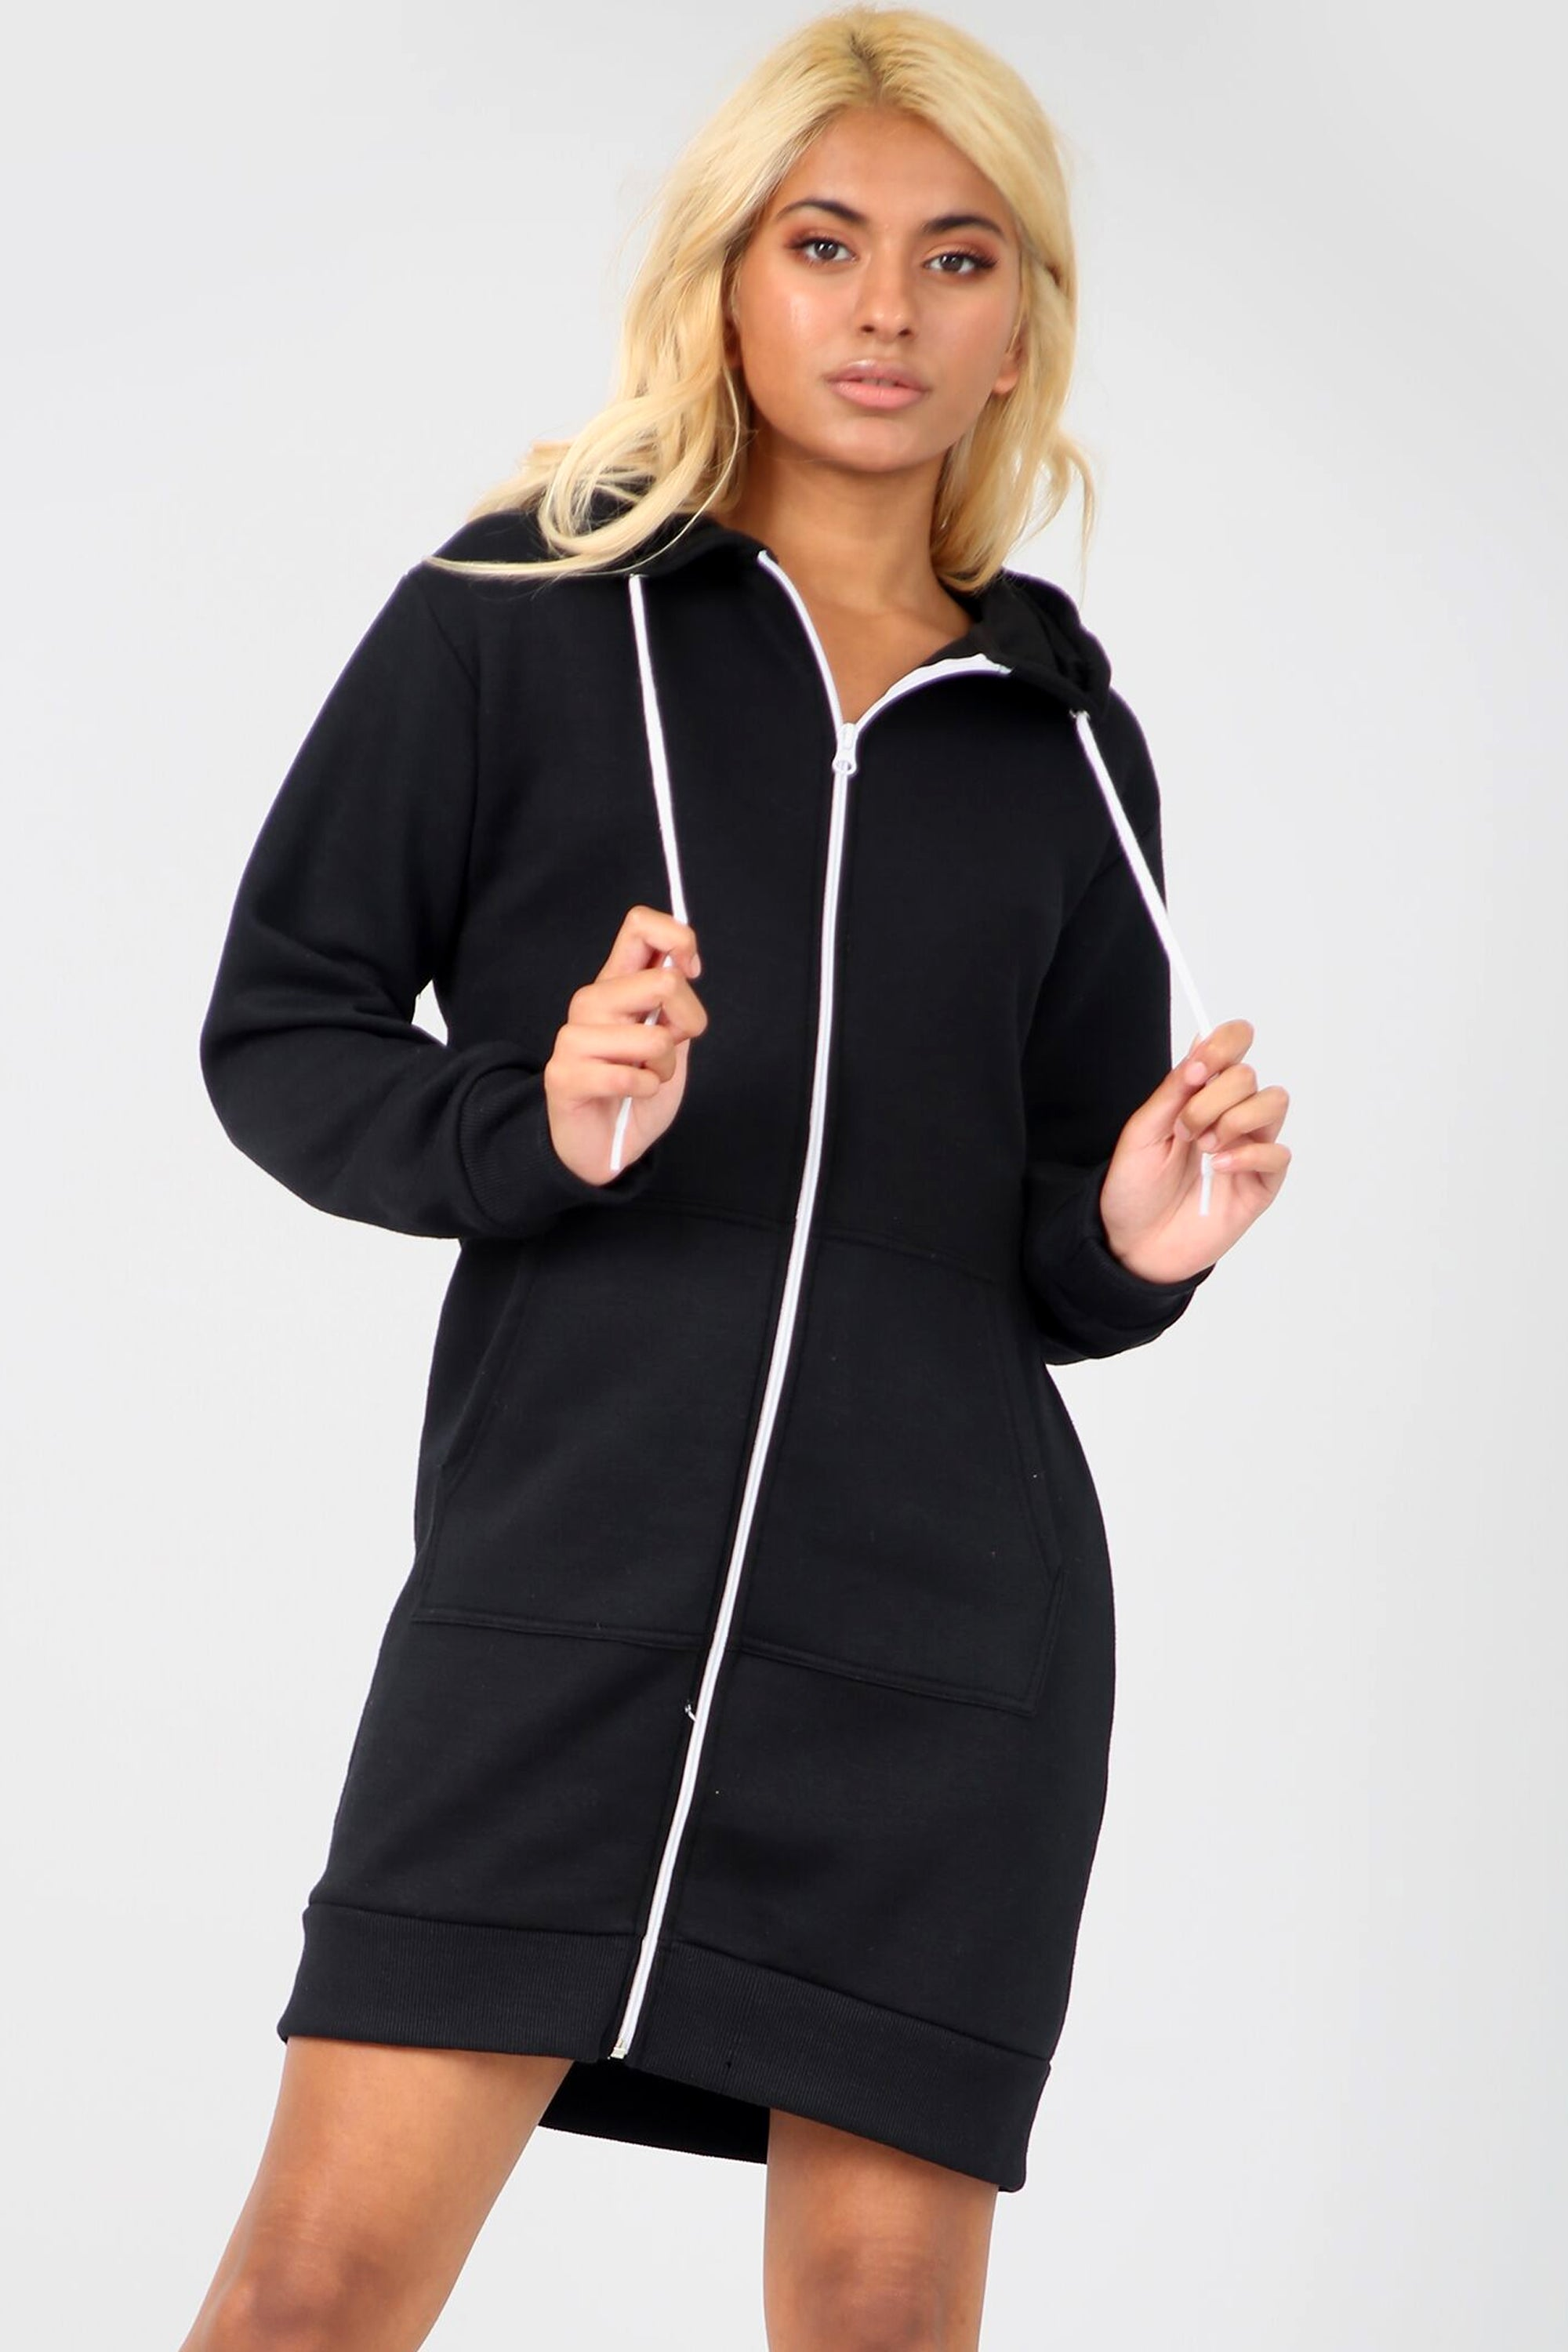 Long Sleeve Hooded Black Sweatshirt Jumper Dress - bejealous-com